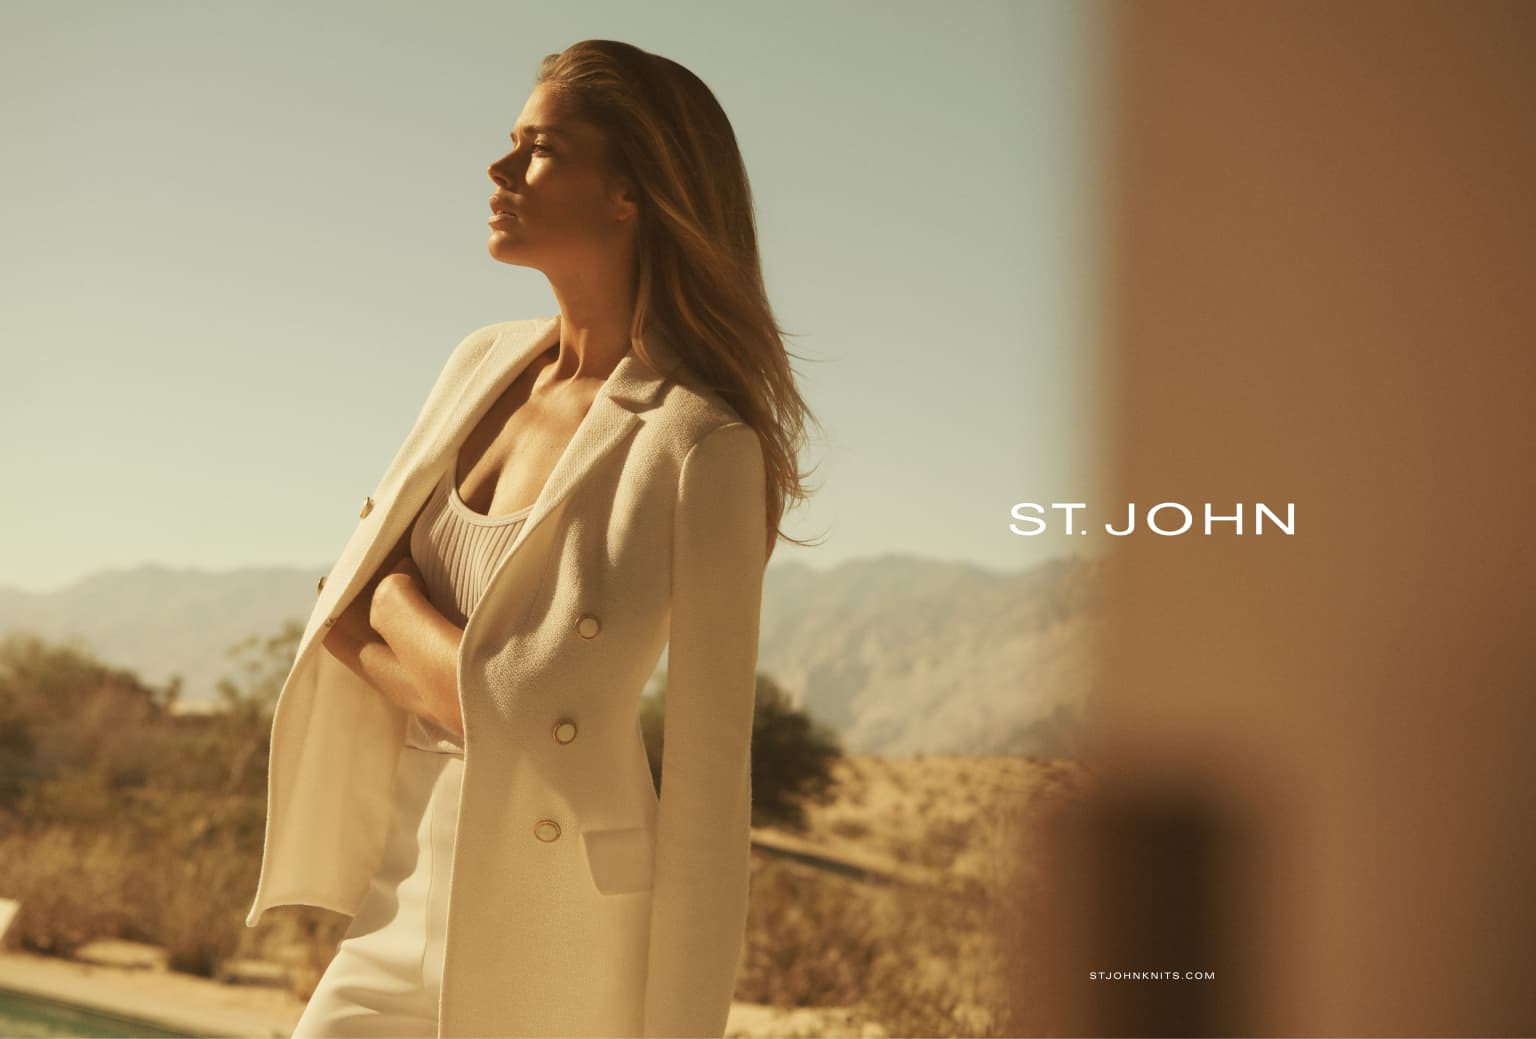 St. John Knits Spring '19 Campaign